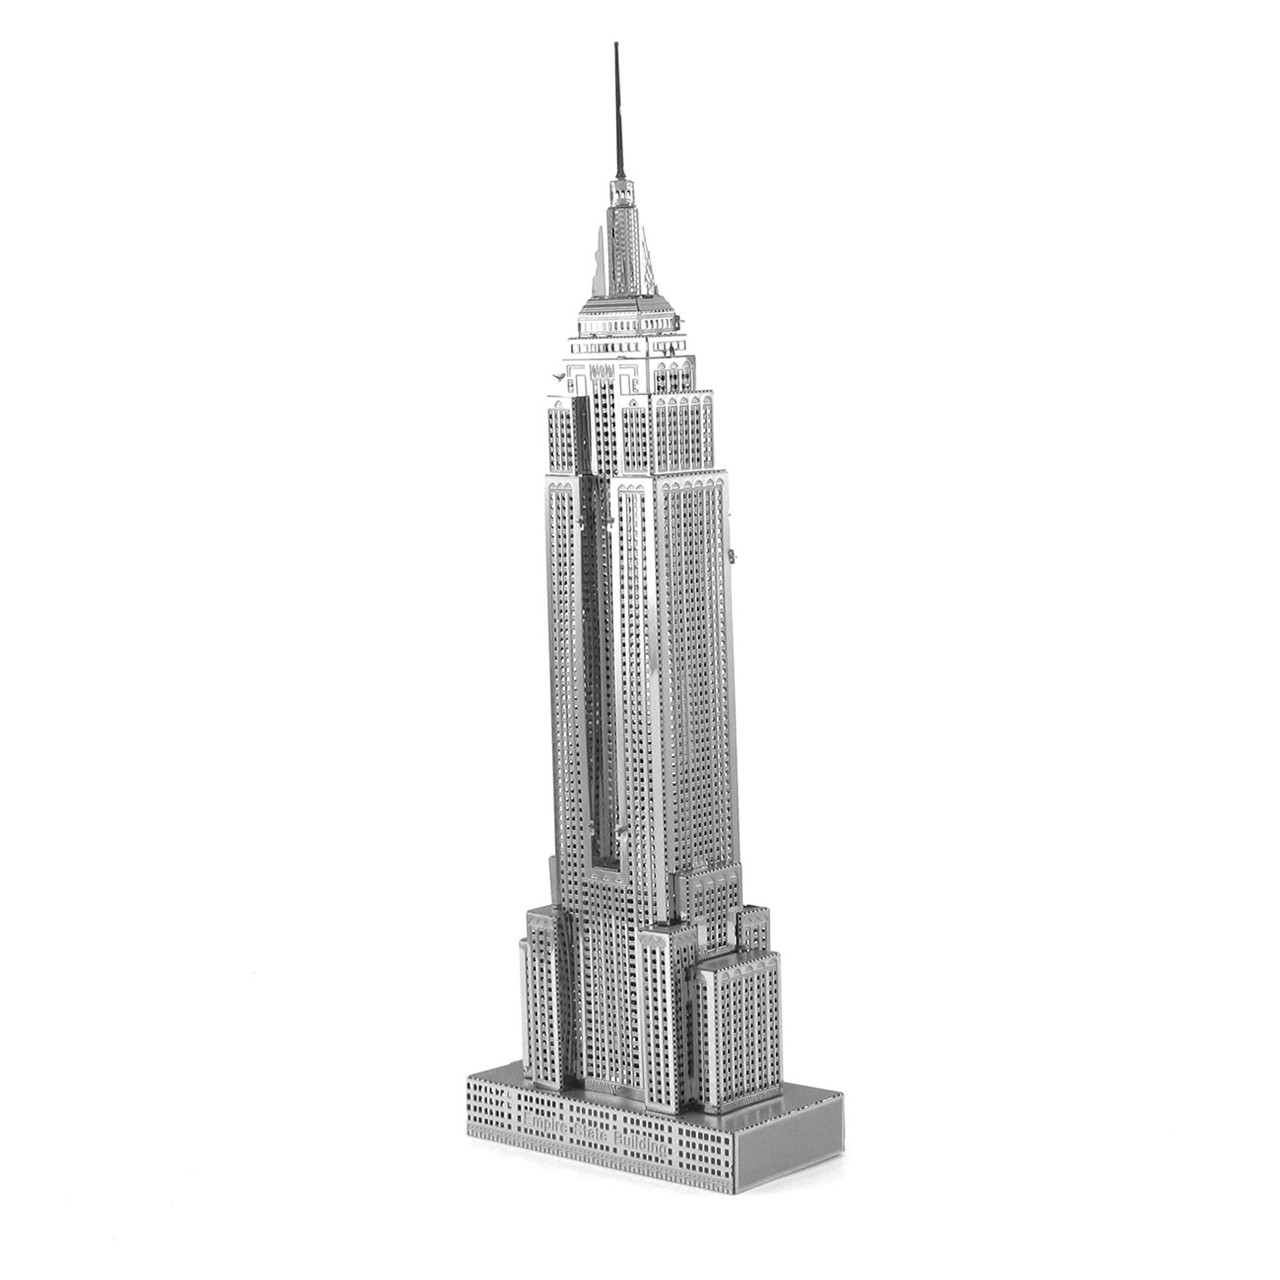 ICONX Taipei 101 3D Laser Cut Model Fascinations 013078